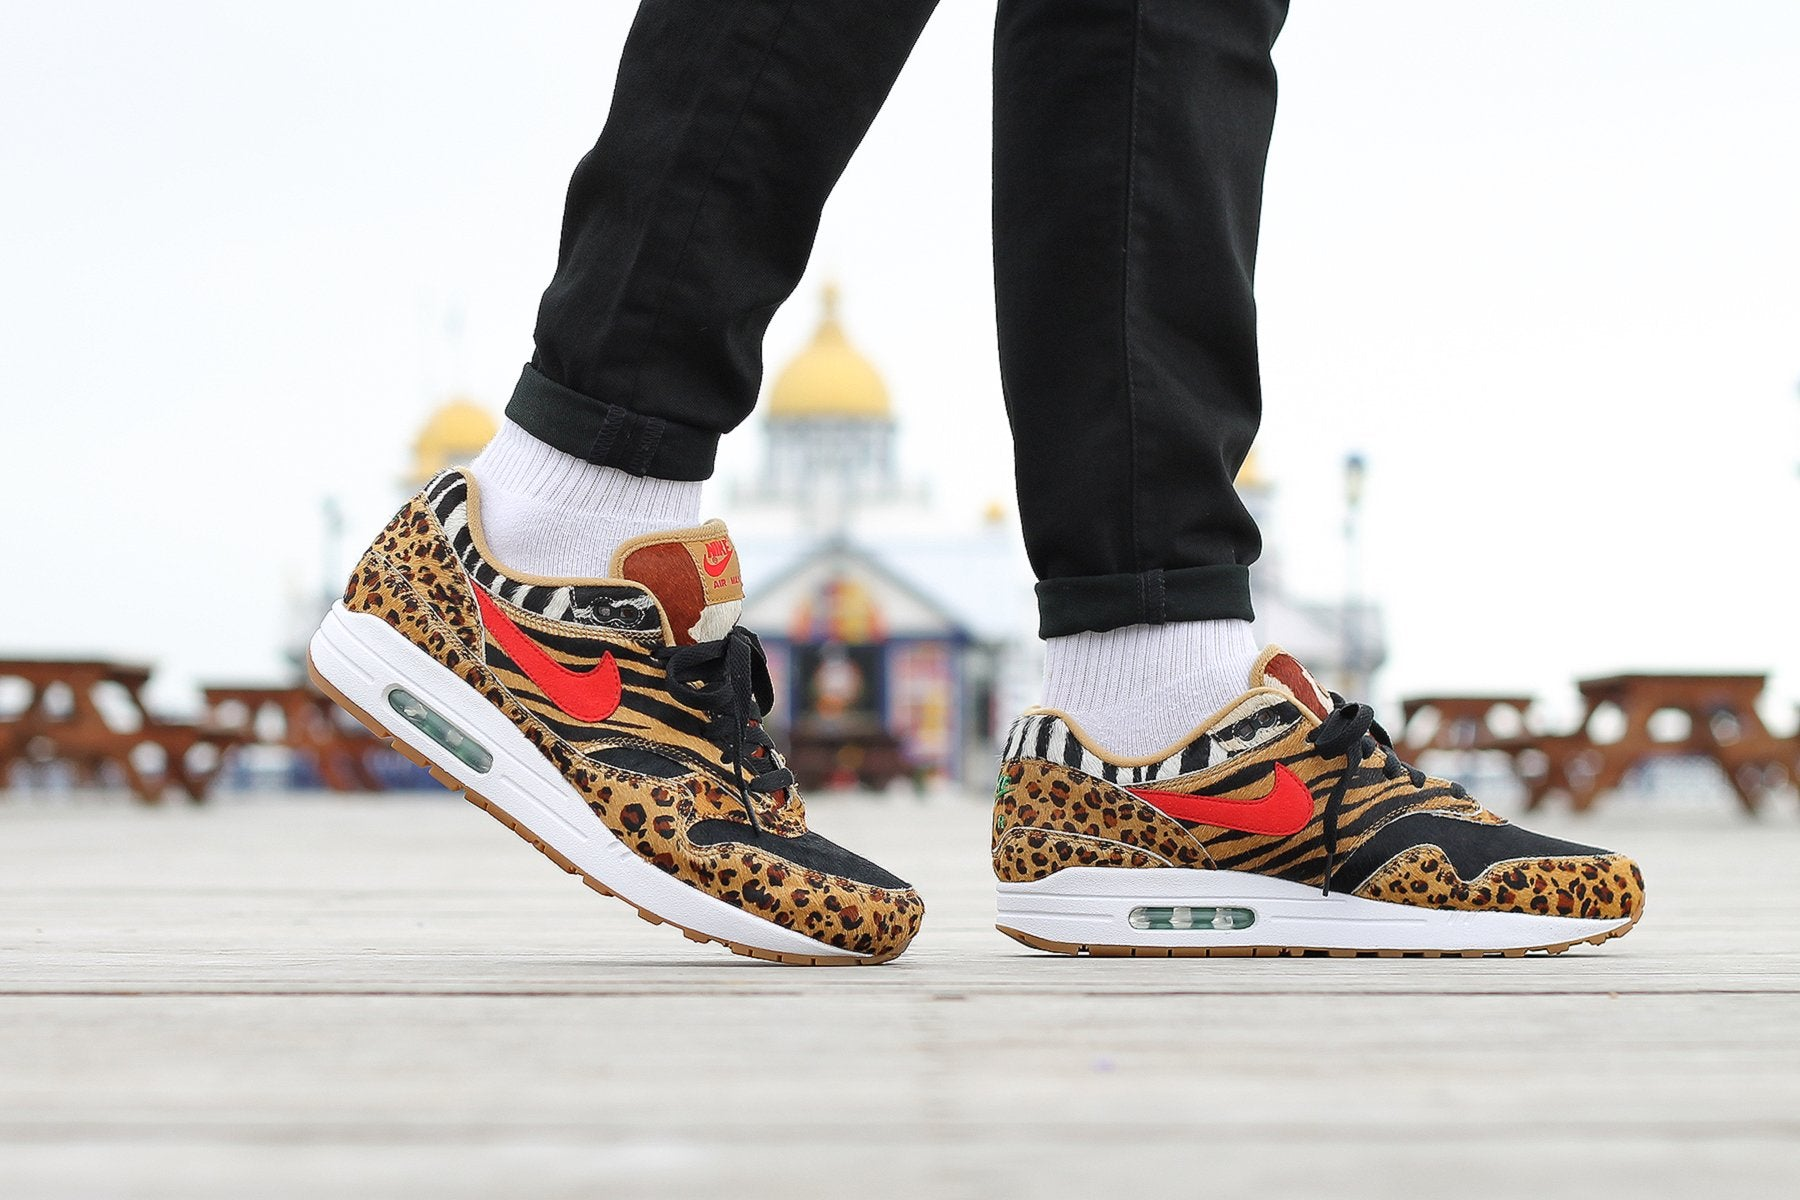 Nike Air Max 1 DLX Atmos 'Beast' Shoes images from Urban Industry, Eastbourne, UK.